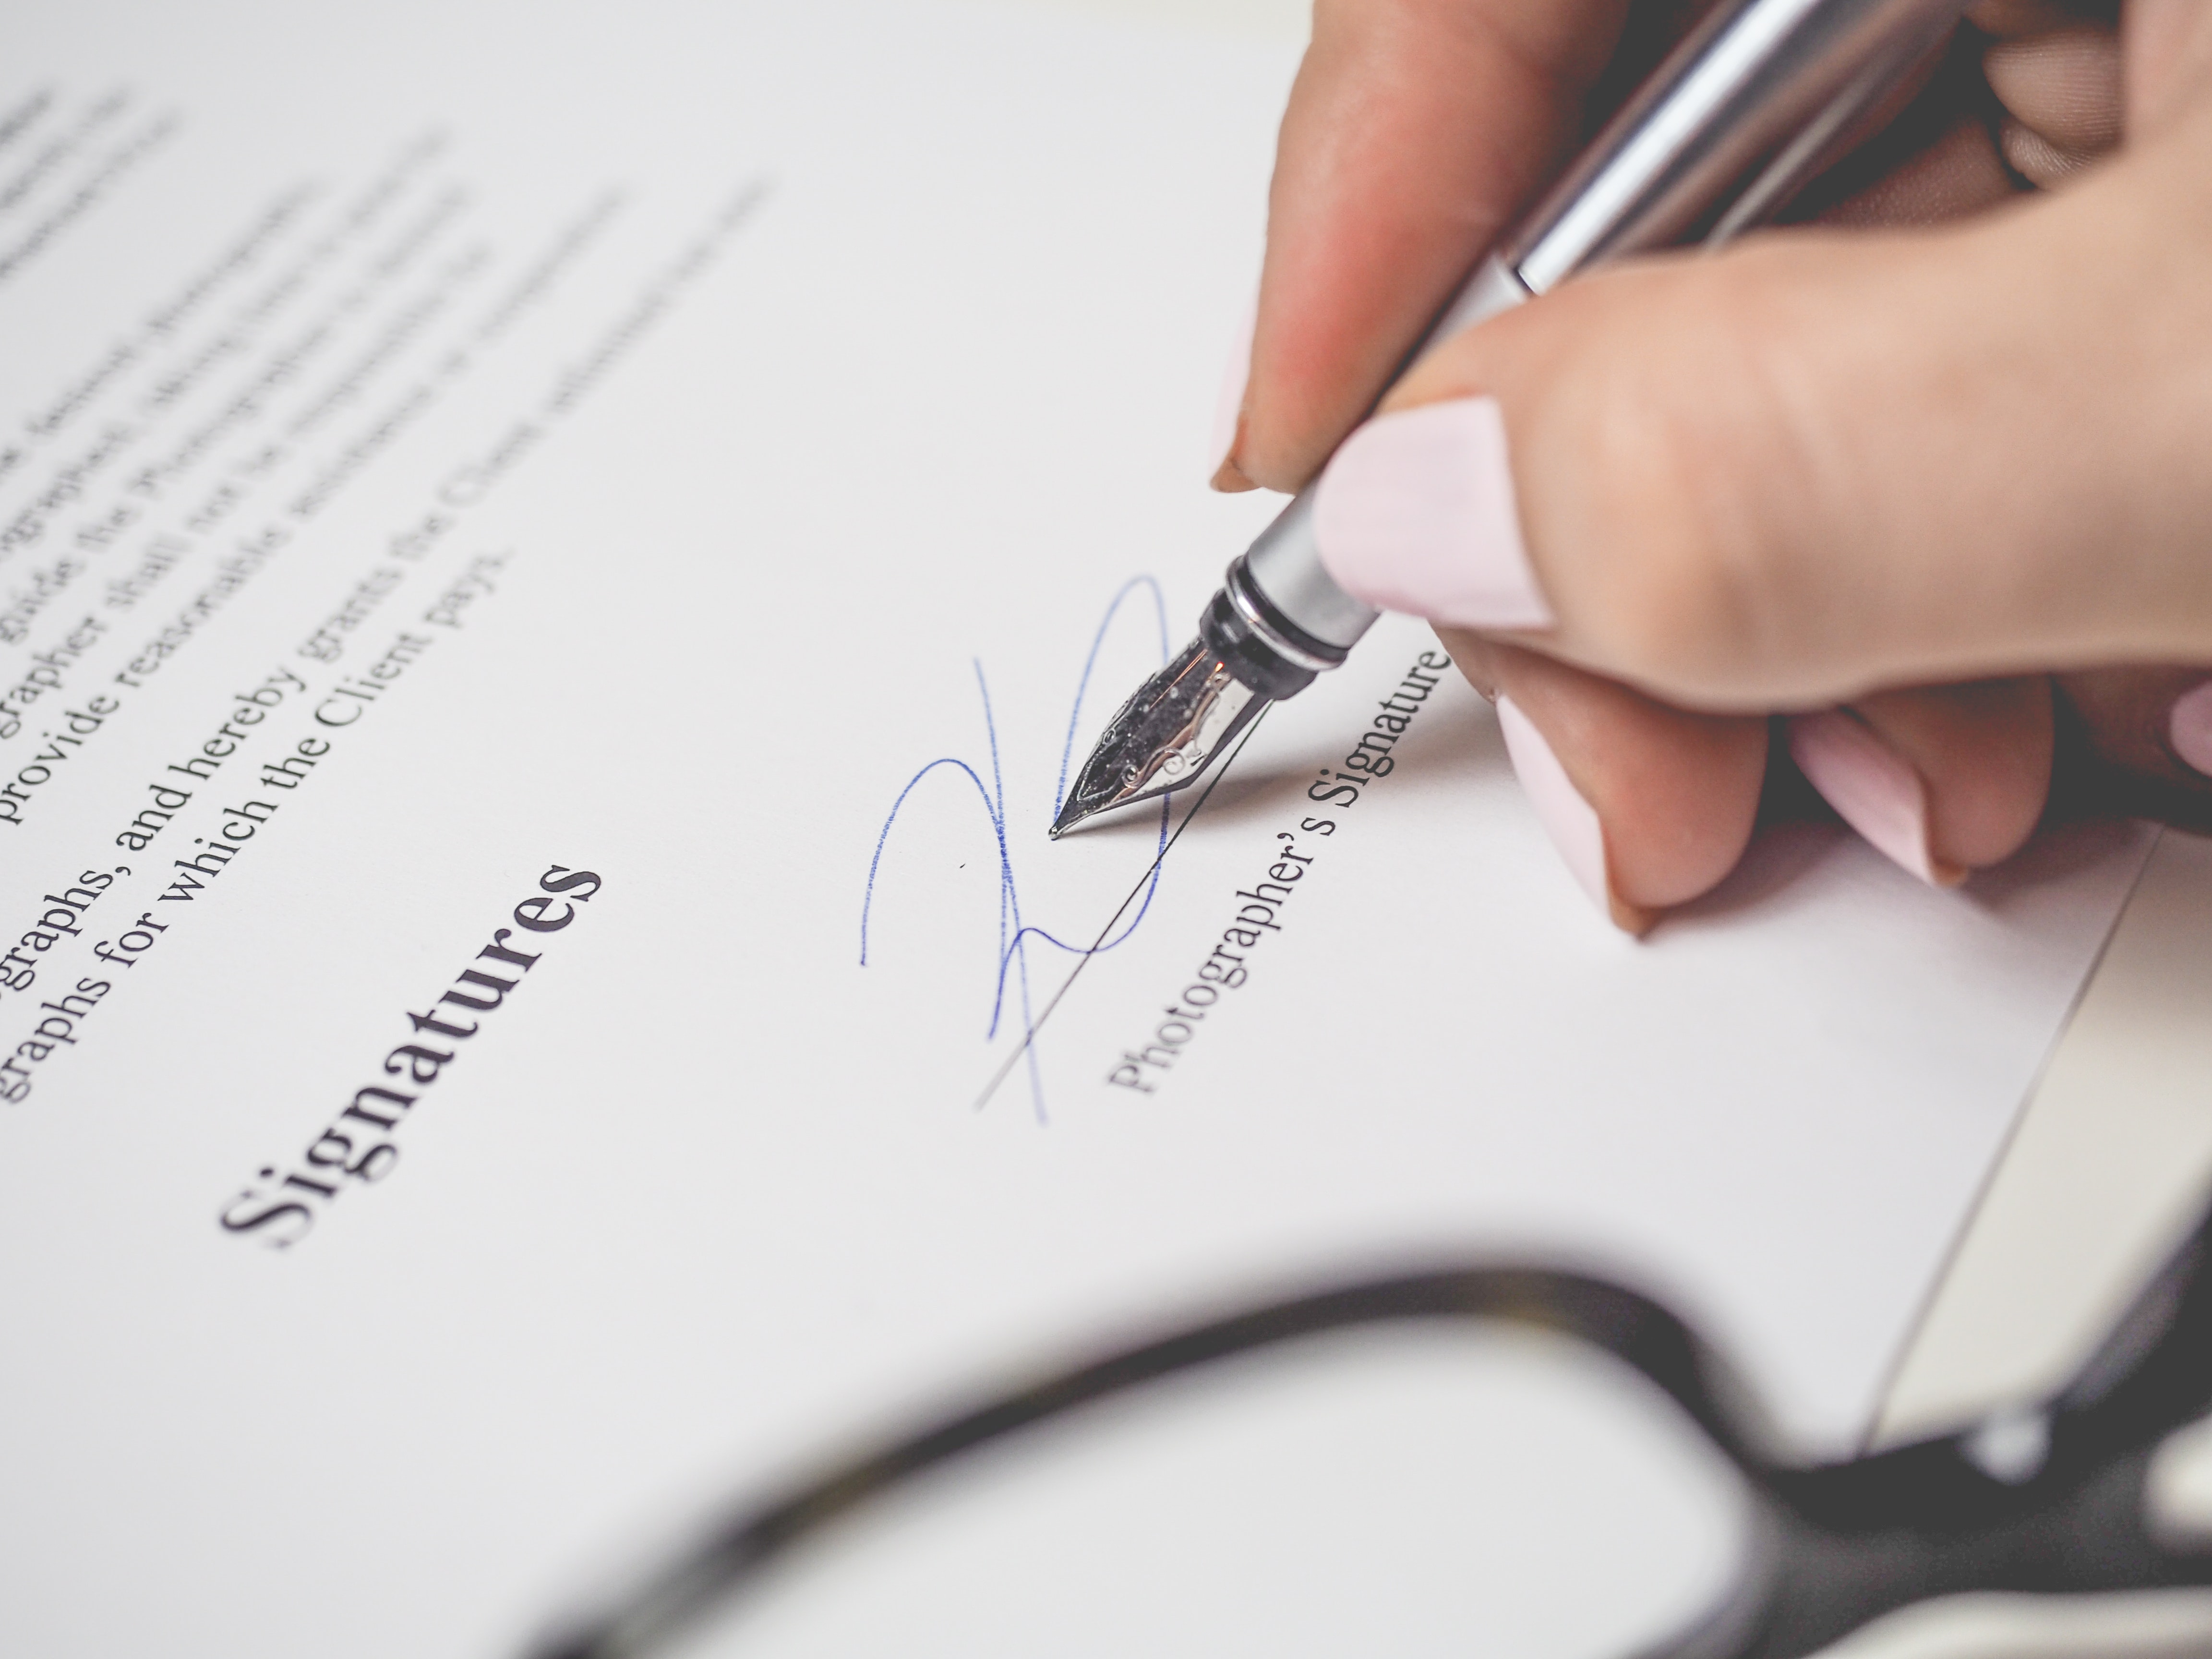 Person Holding Silver Pen Signing Photographers Signature, Agreement, Nails, Write, Work, HQ Photo